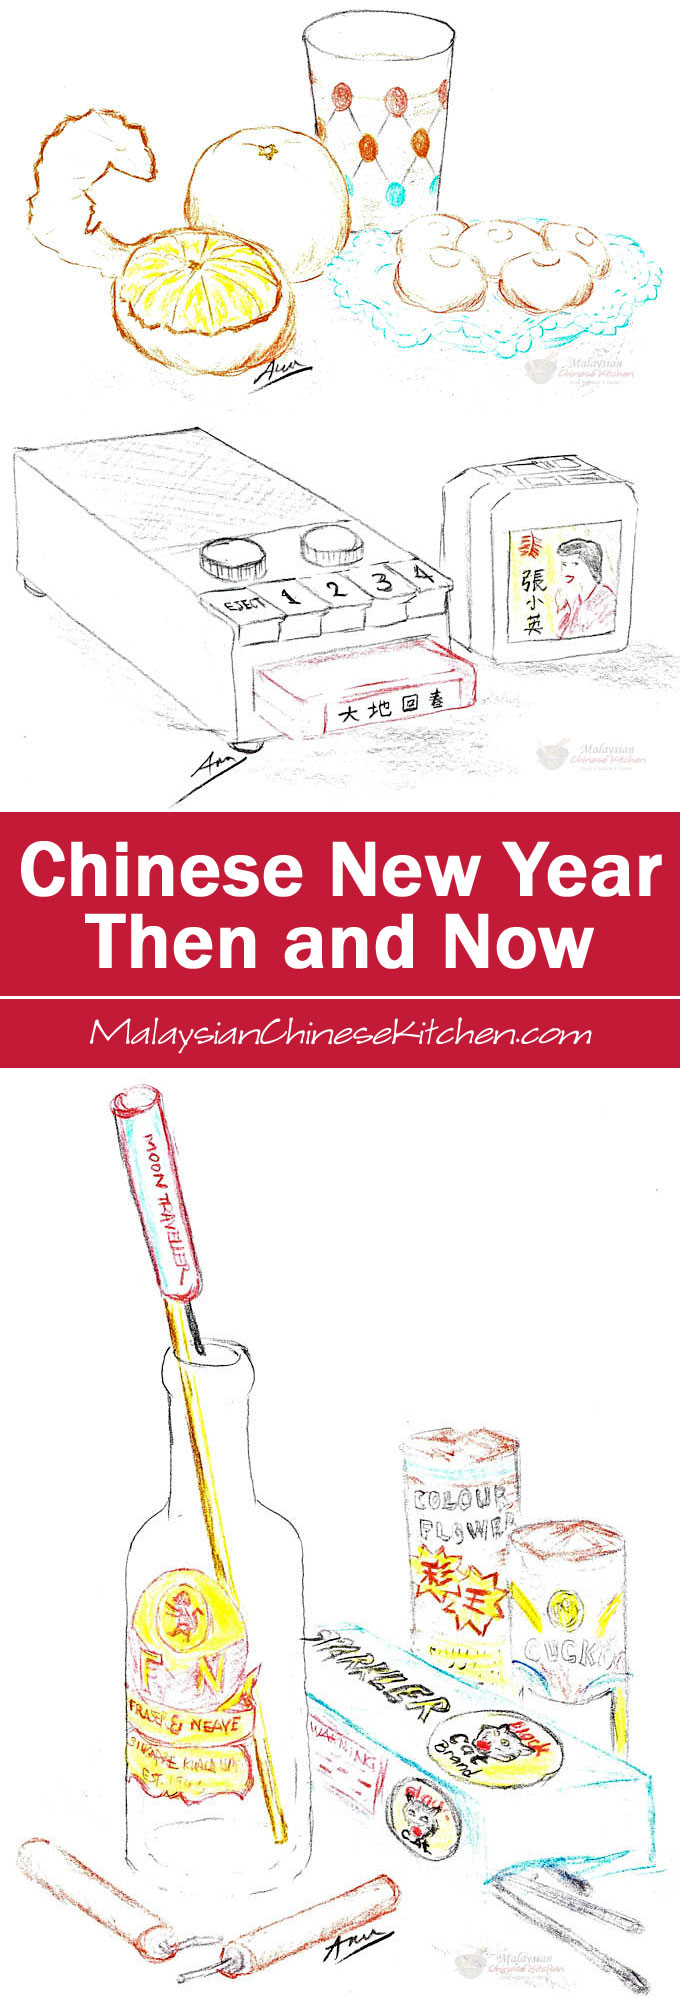 Random musings of Chinese New Year past and present, how some things have changed radically while other things remain the same. | MalaysianChineseKitchen.com